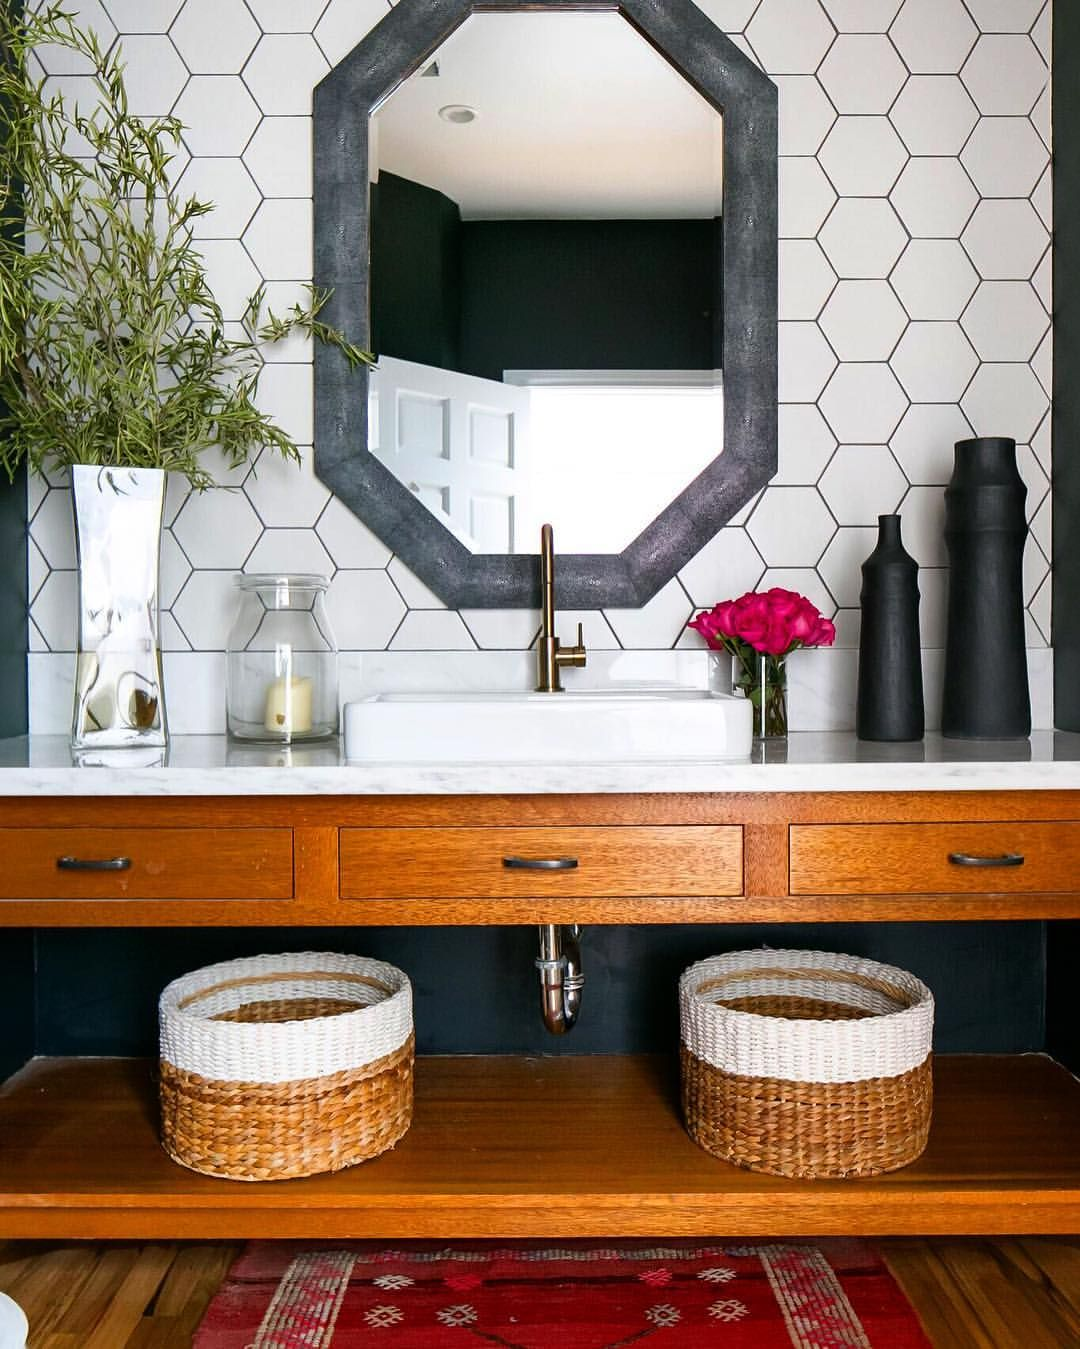 new bathroom images%0A Hex tile  black grout  dark green walls  not pictured   new sink and matte  bronze faucet